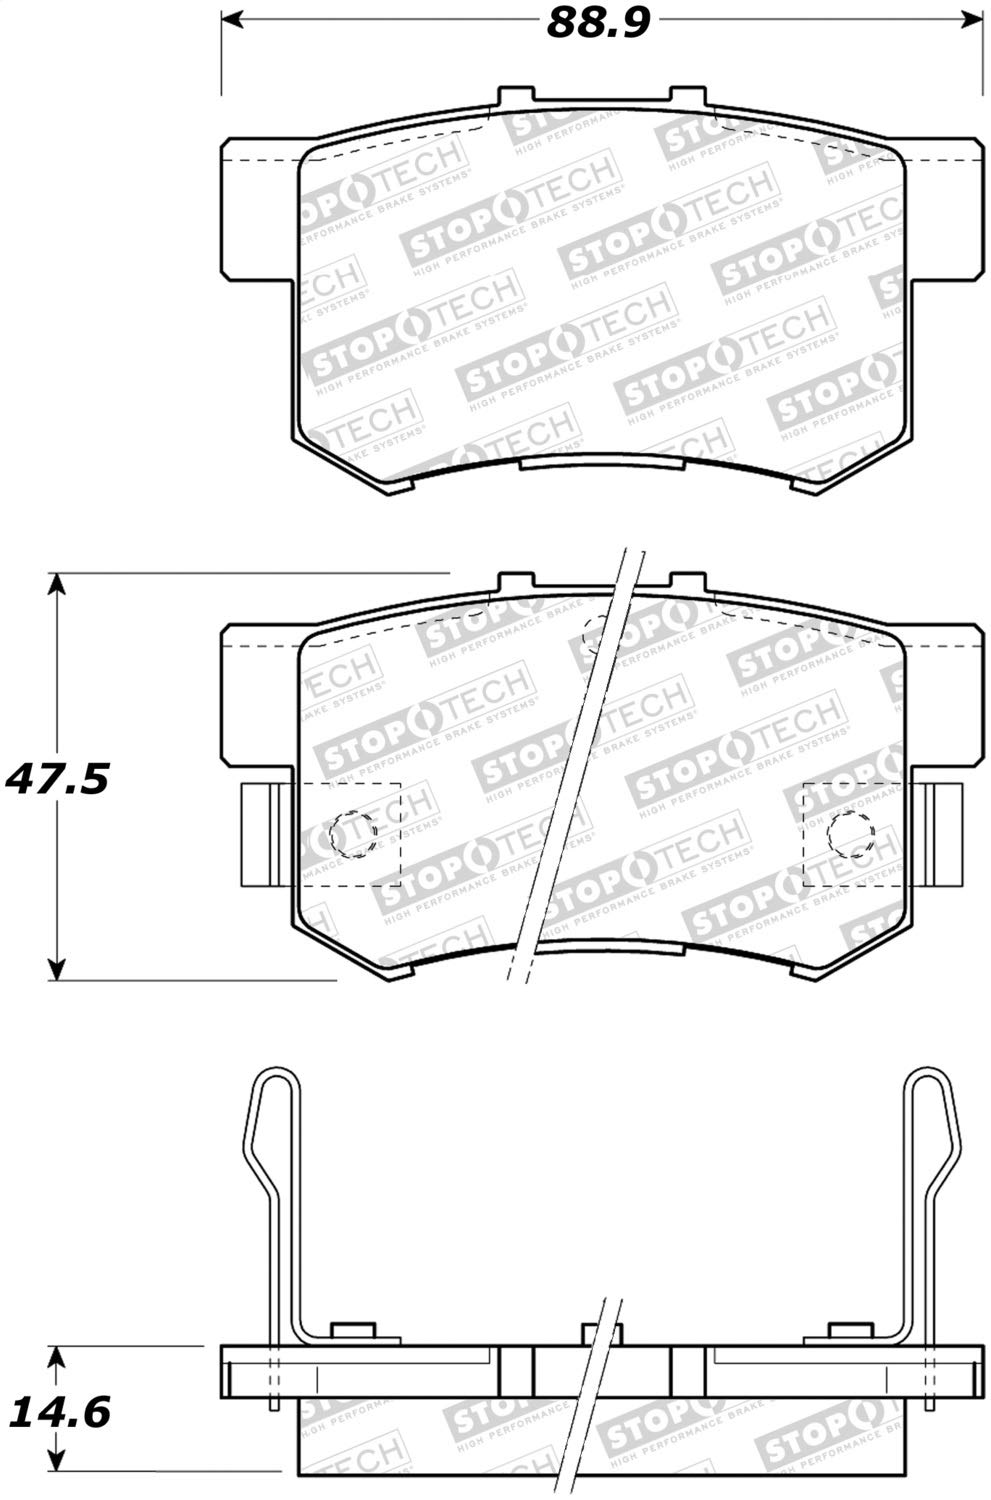 StopTech 308.05371 Street Brake Pads; Rear with Shims and Hardware